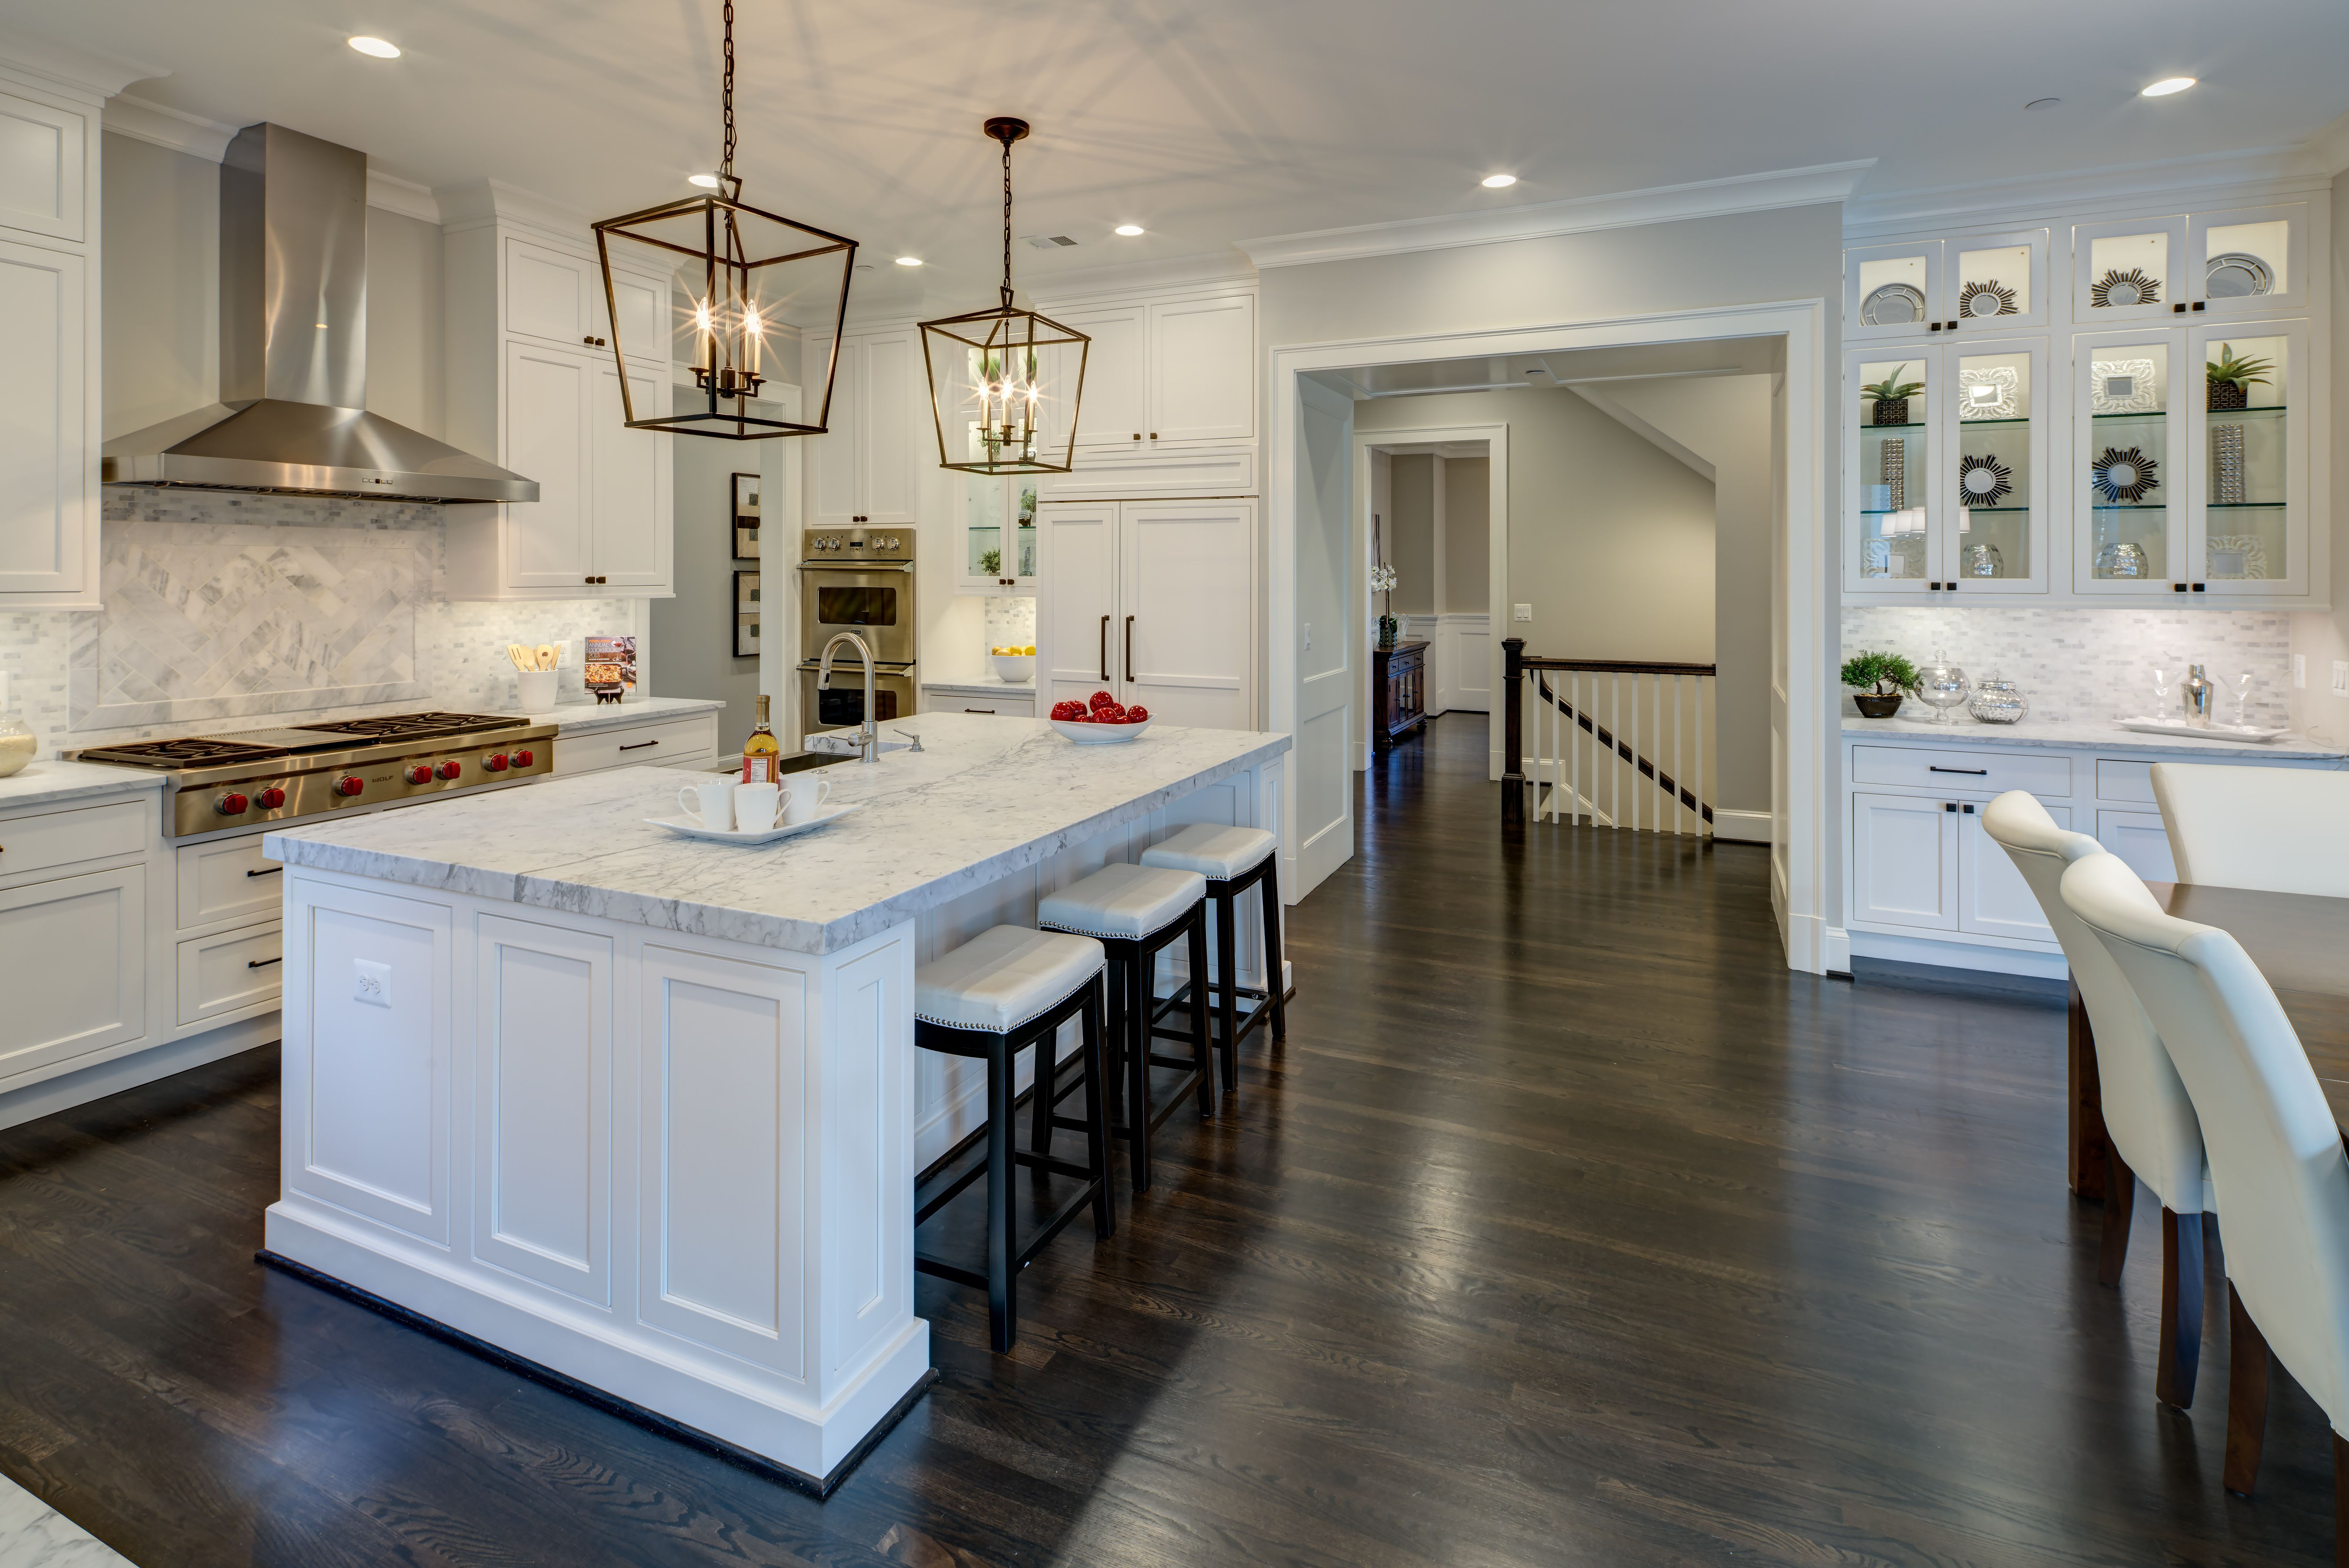 GOLD AWARD Speculative Transitional Home Laurence Cafritz Builders Architect Studio Z Design Concepts LLC